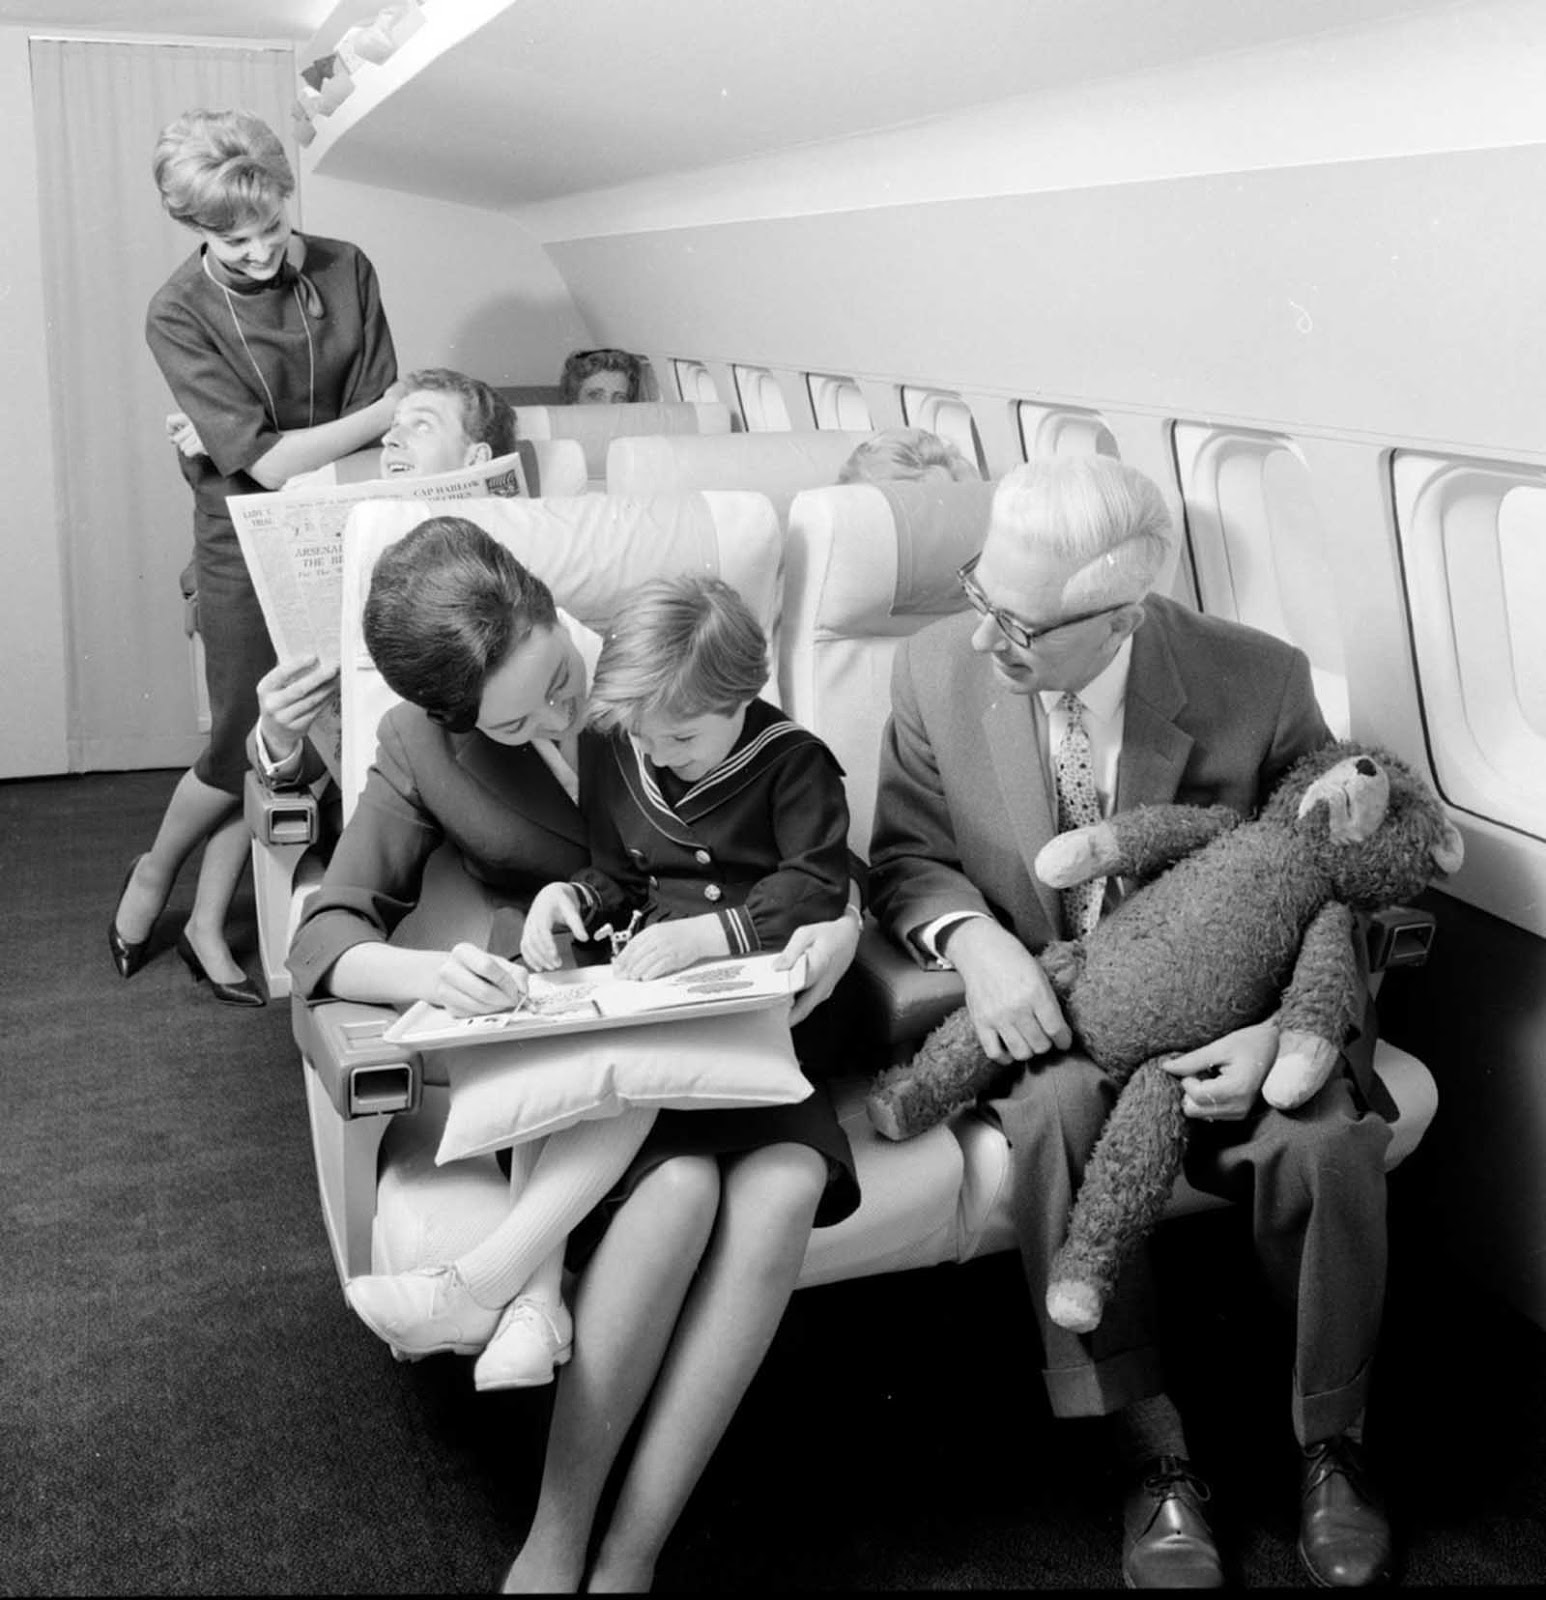 A couple flying first class in 1960s.